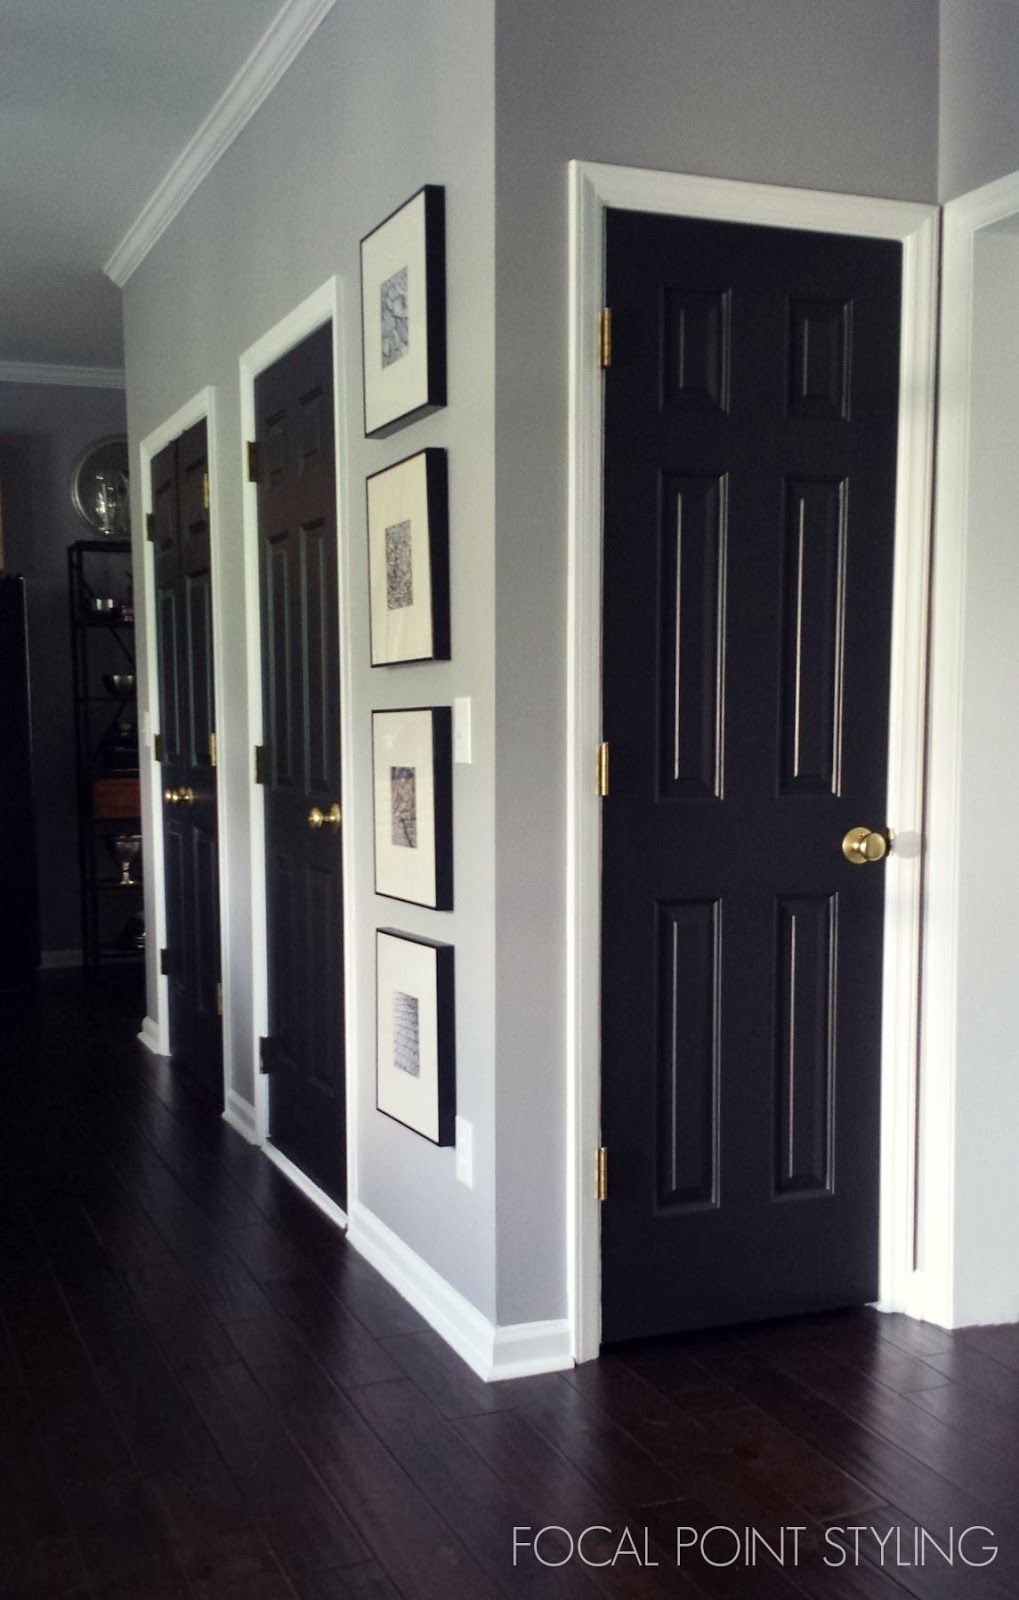 White interior doors with oak trim - Focal Point Styling Painting Interior Doors Black Updating